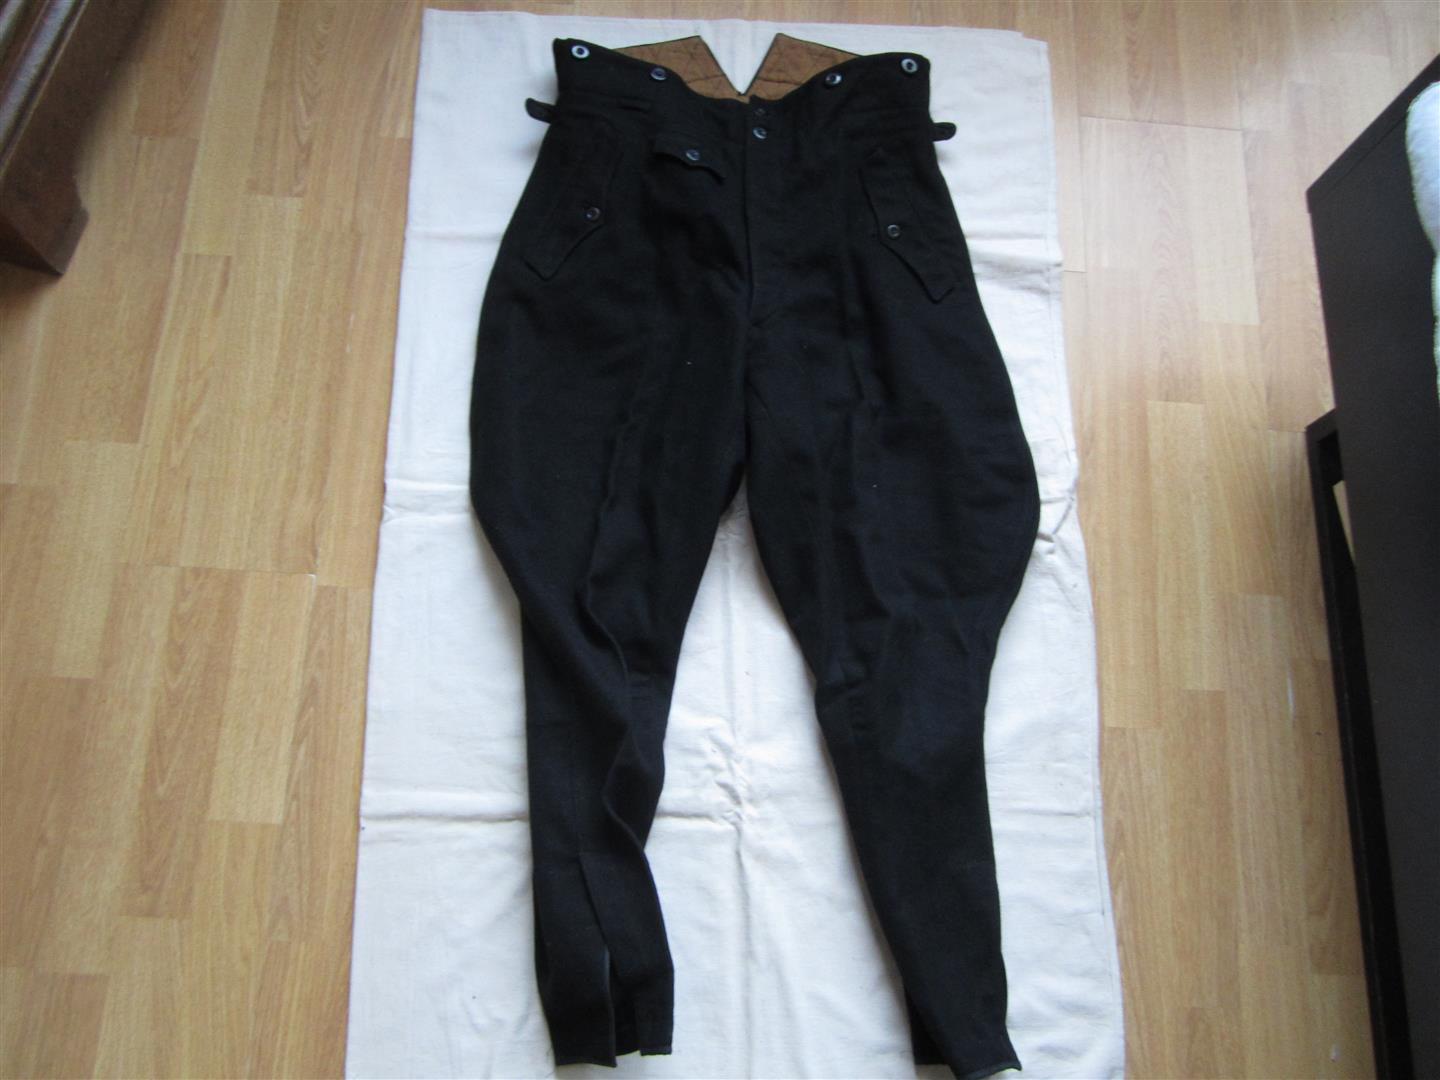 WW2 German NSKK Breeches